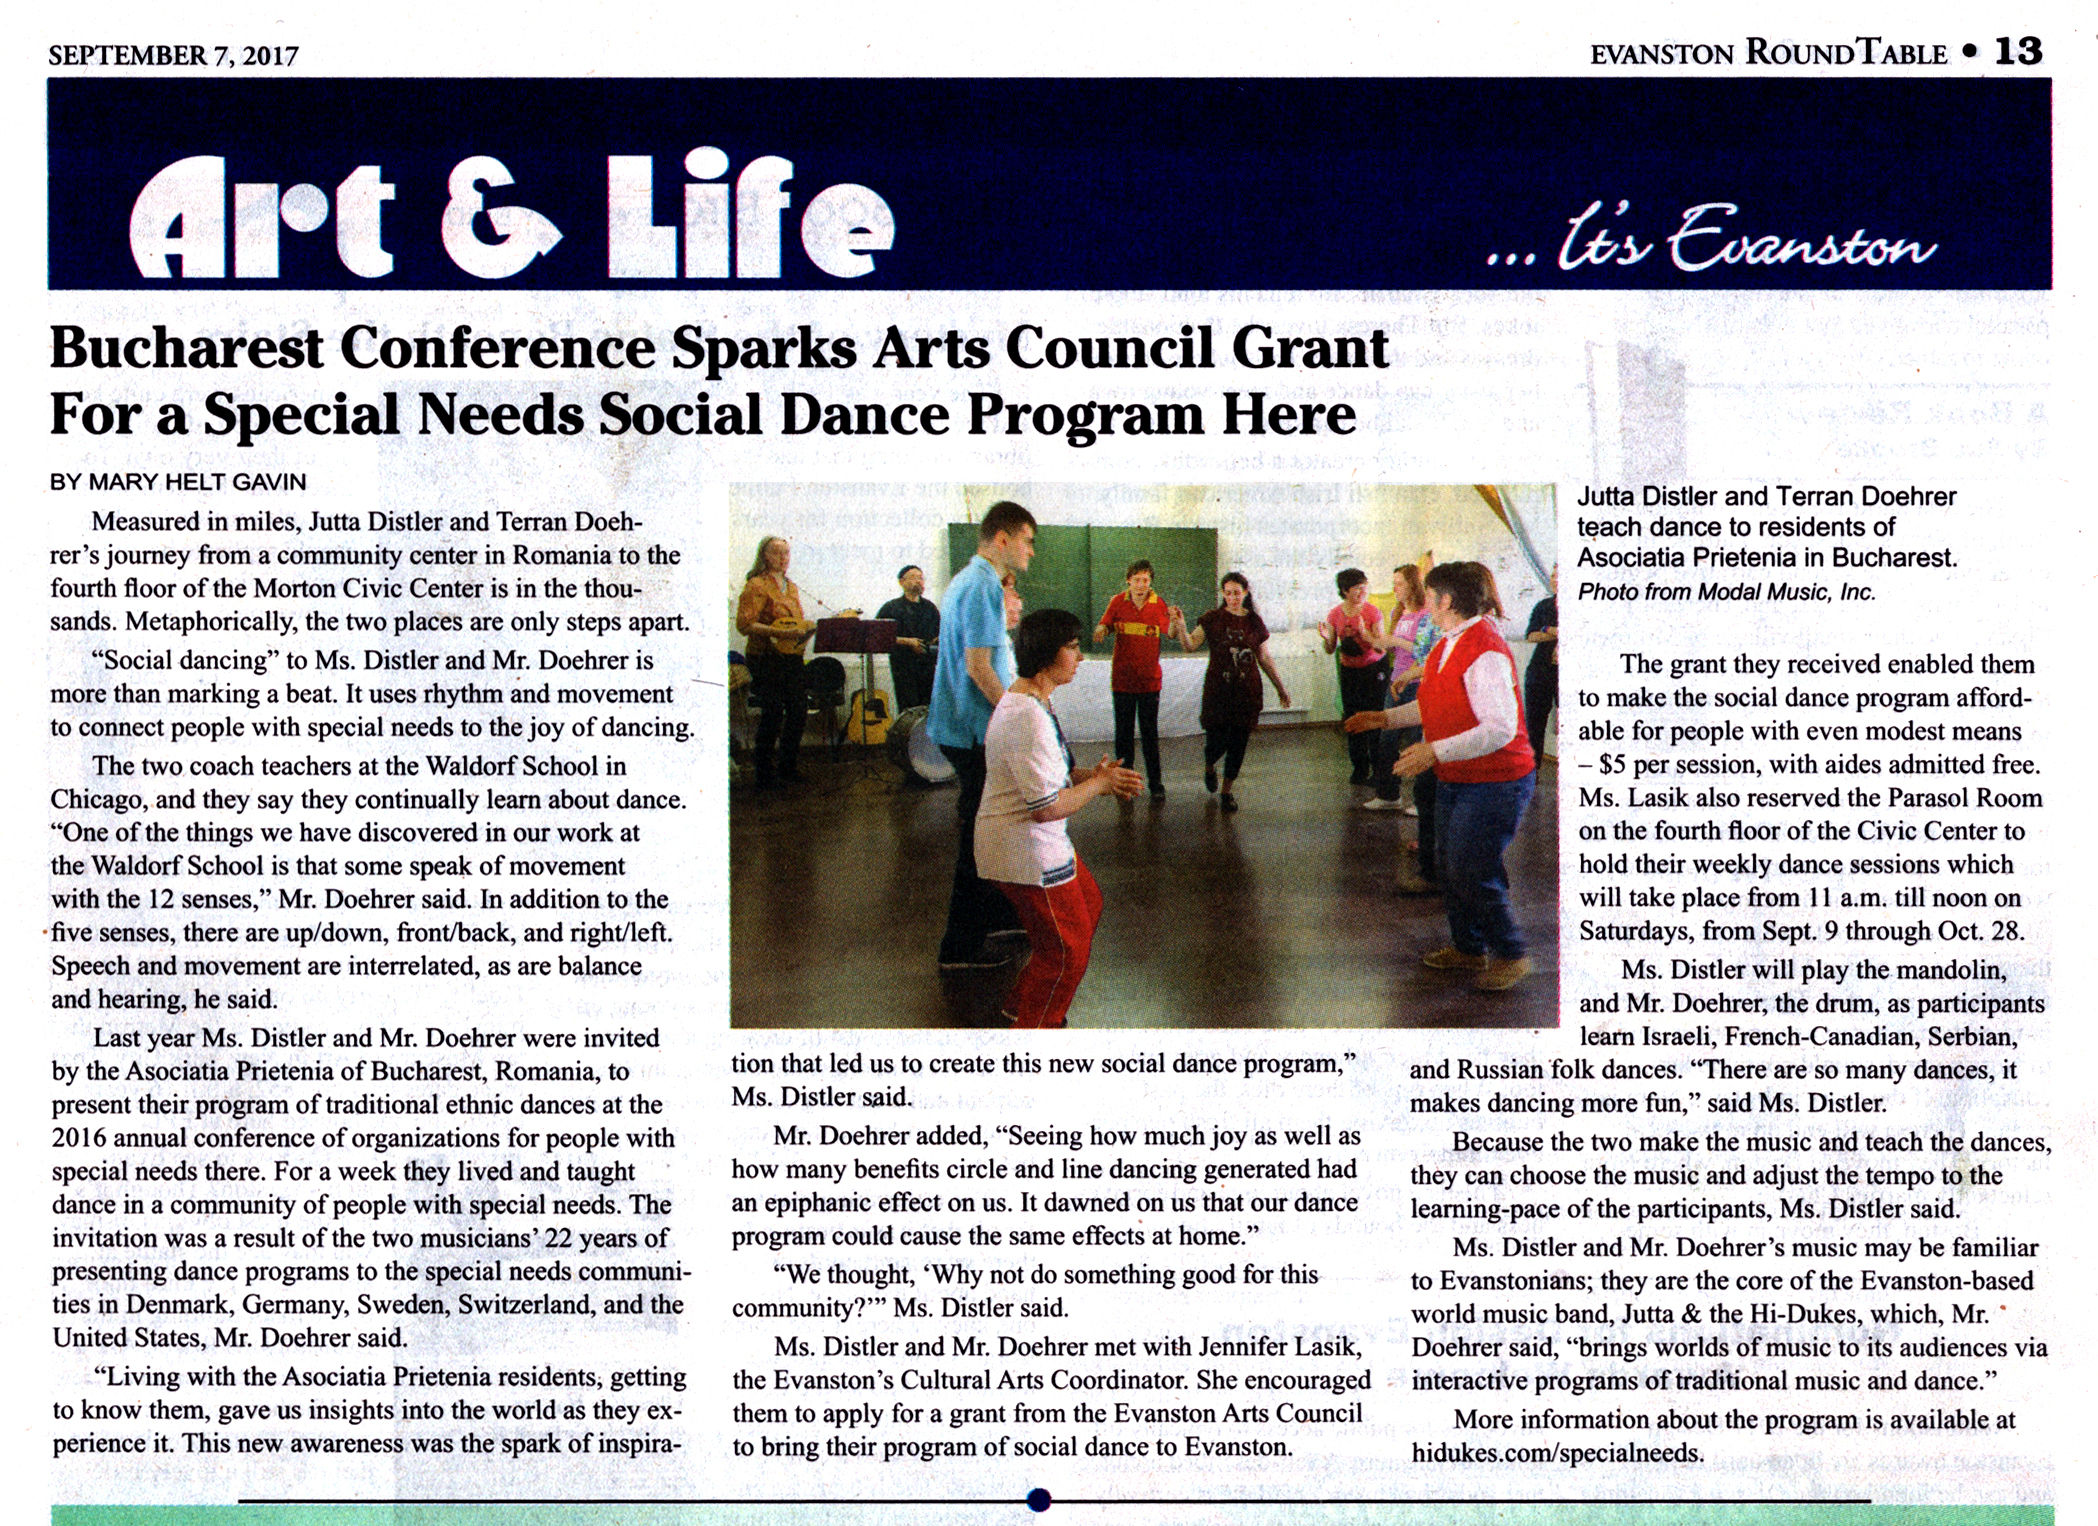 Image of Evanston Round Table article about the Jutta & the Hi-Dukes Special Needs Social Dance program inspired by their work in Romania.